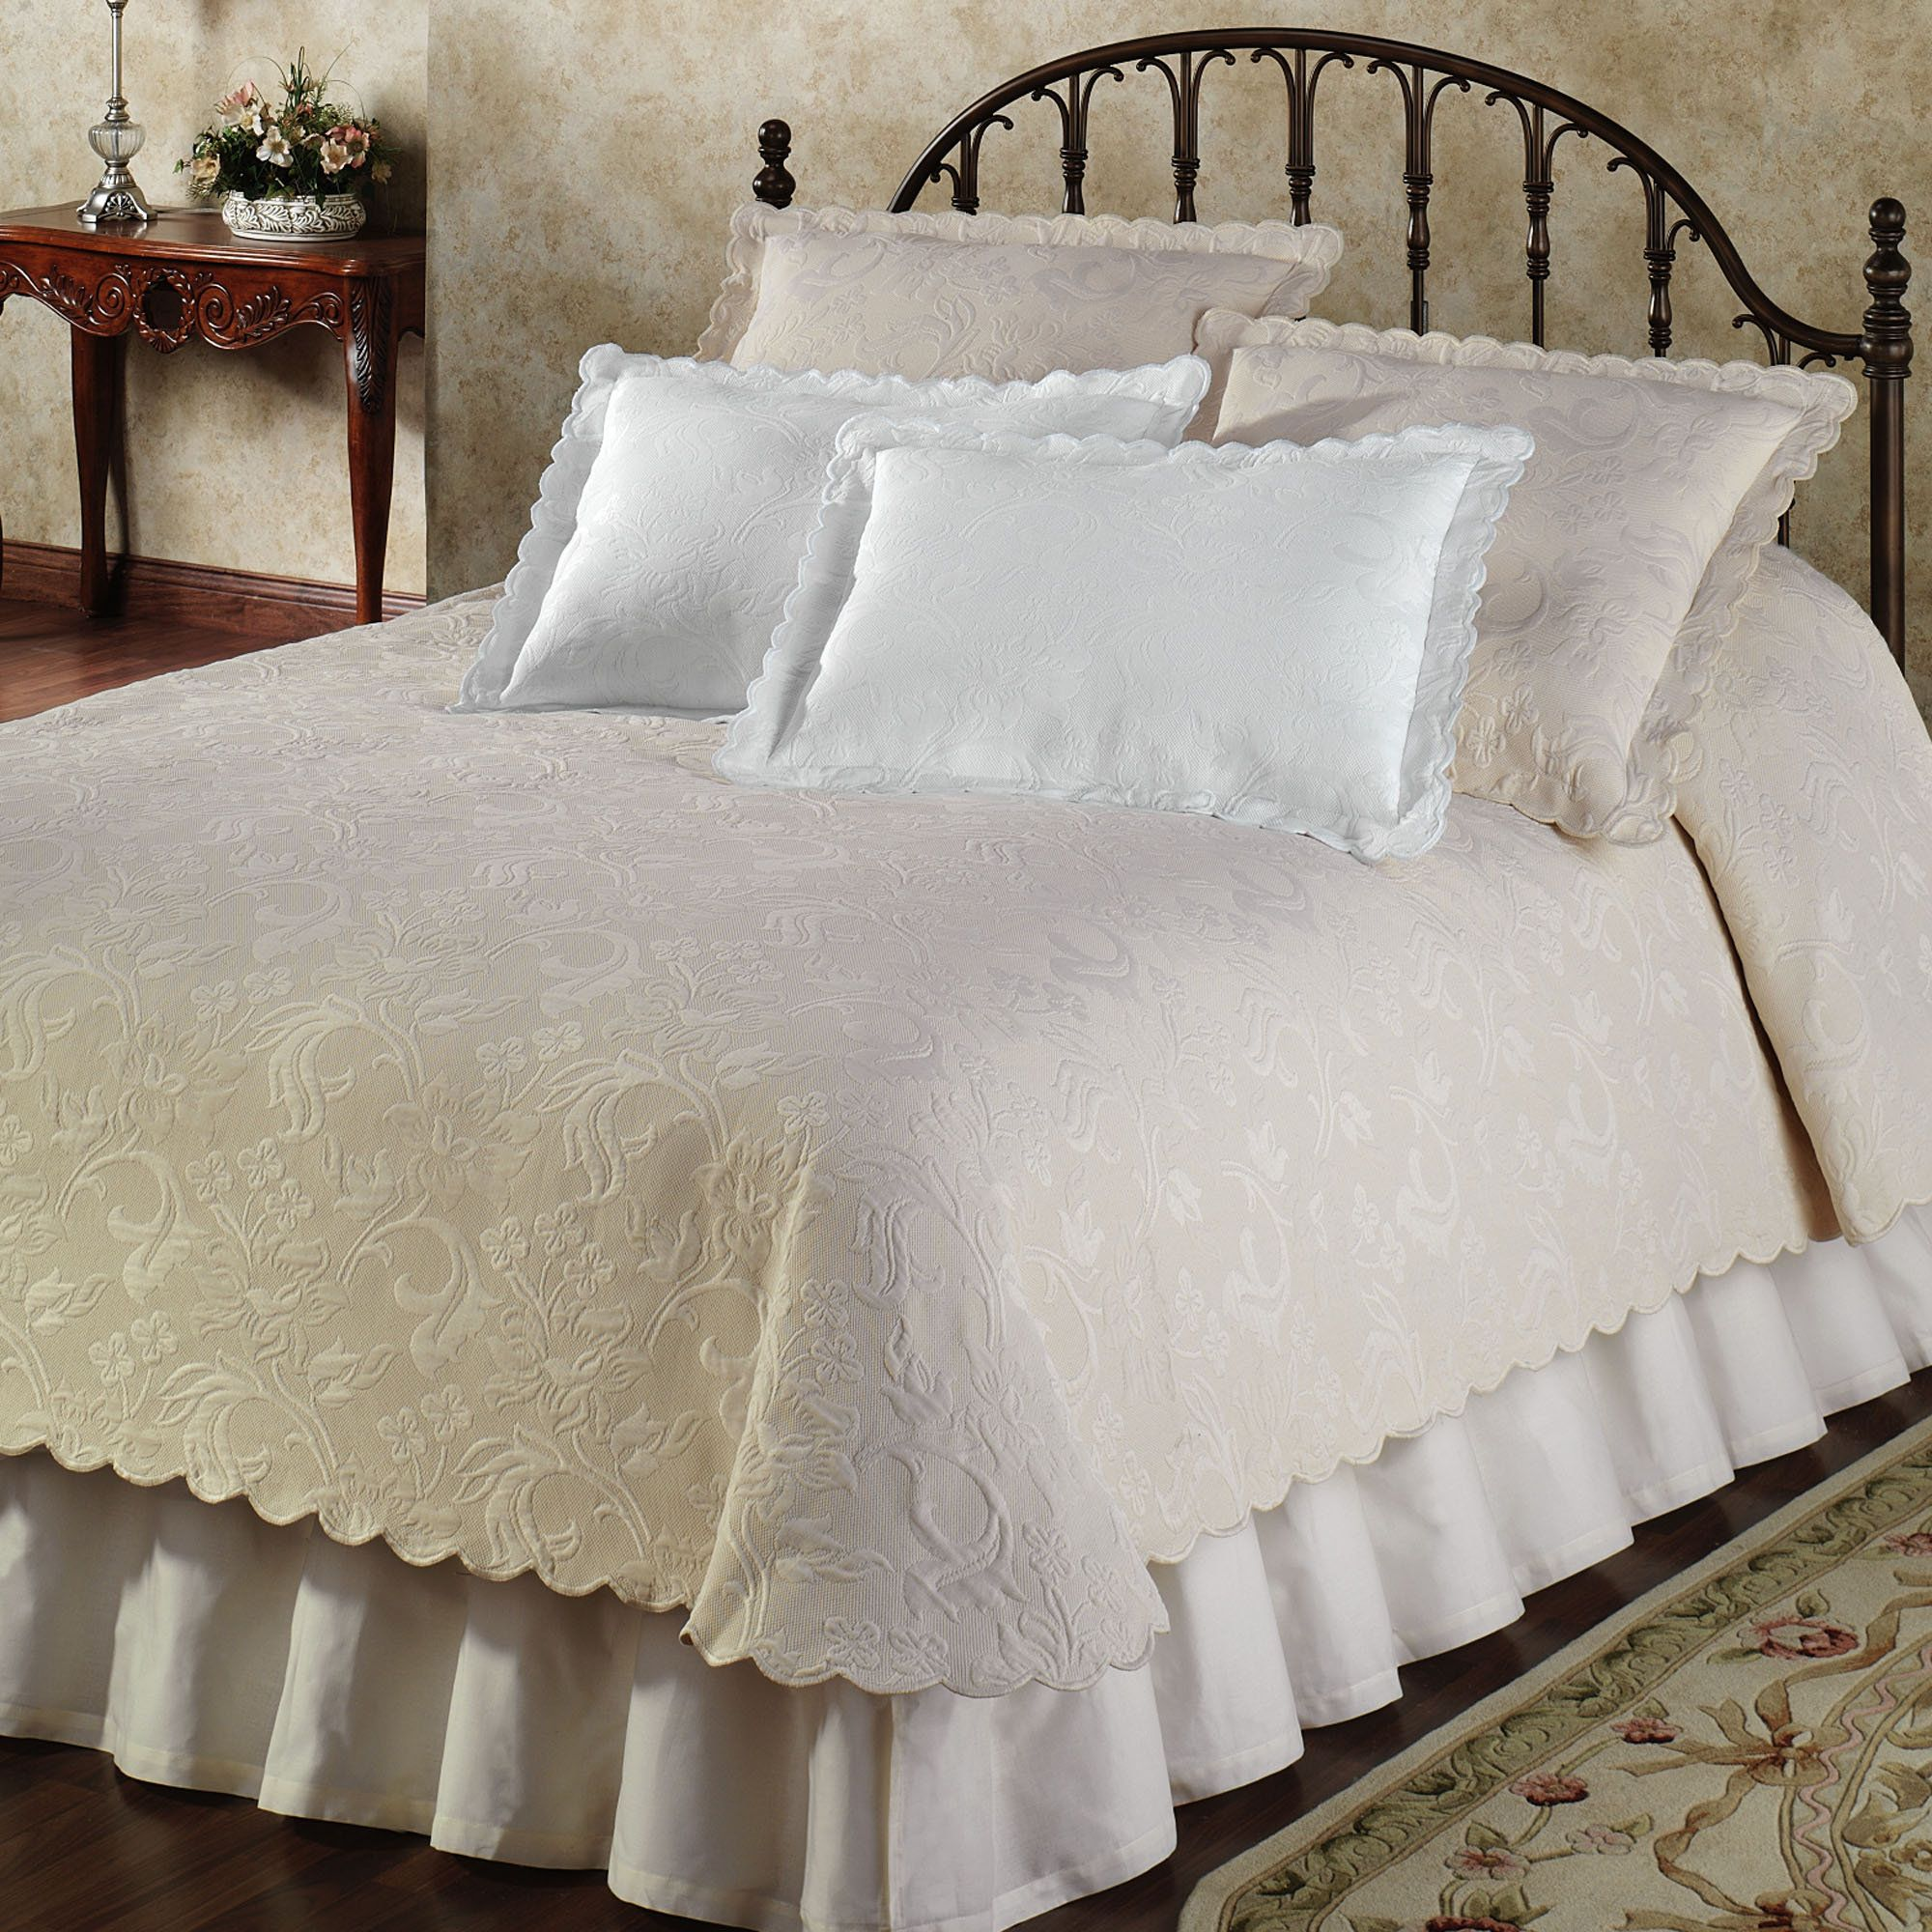 Bed Coverlet Botanica Woven Matelasse Coverlet Christmas List Pinterest